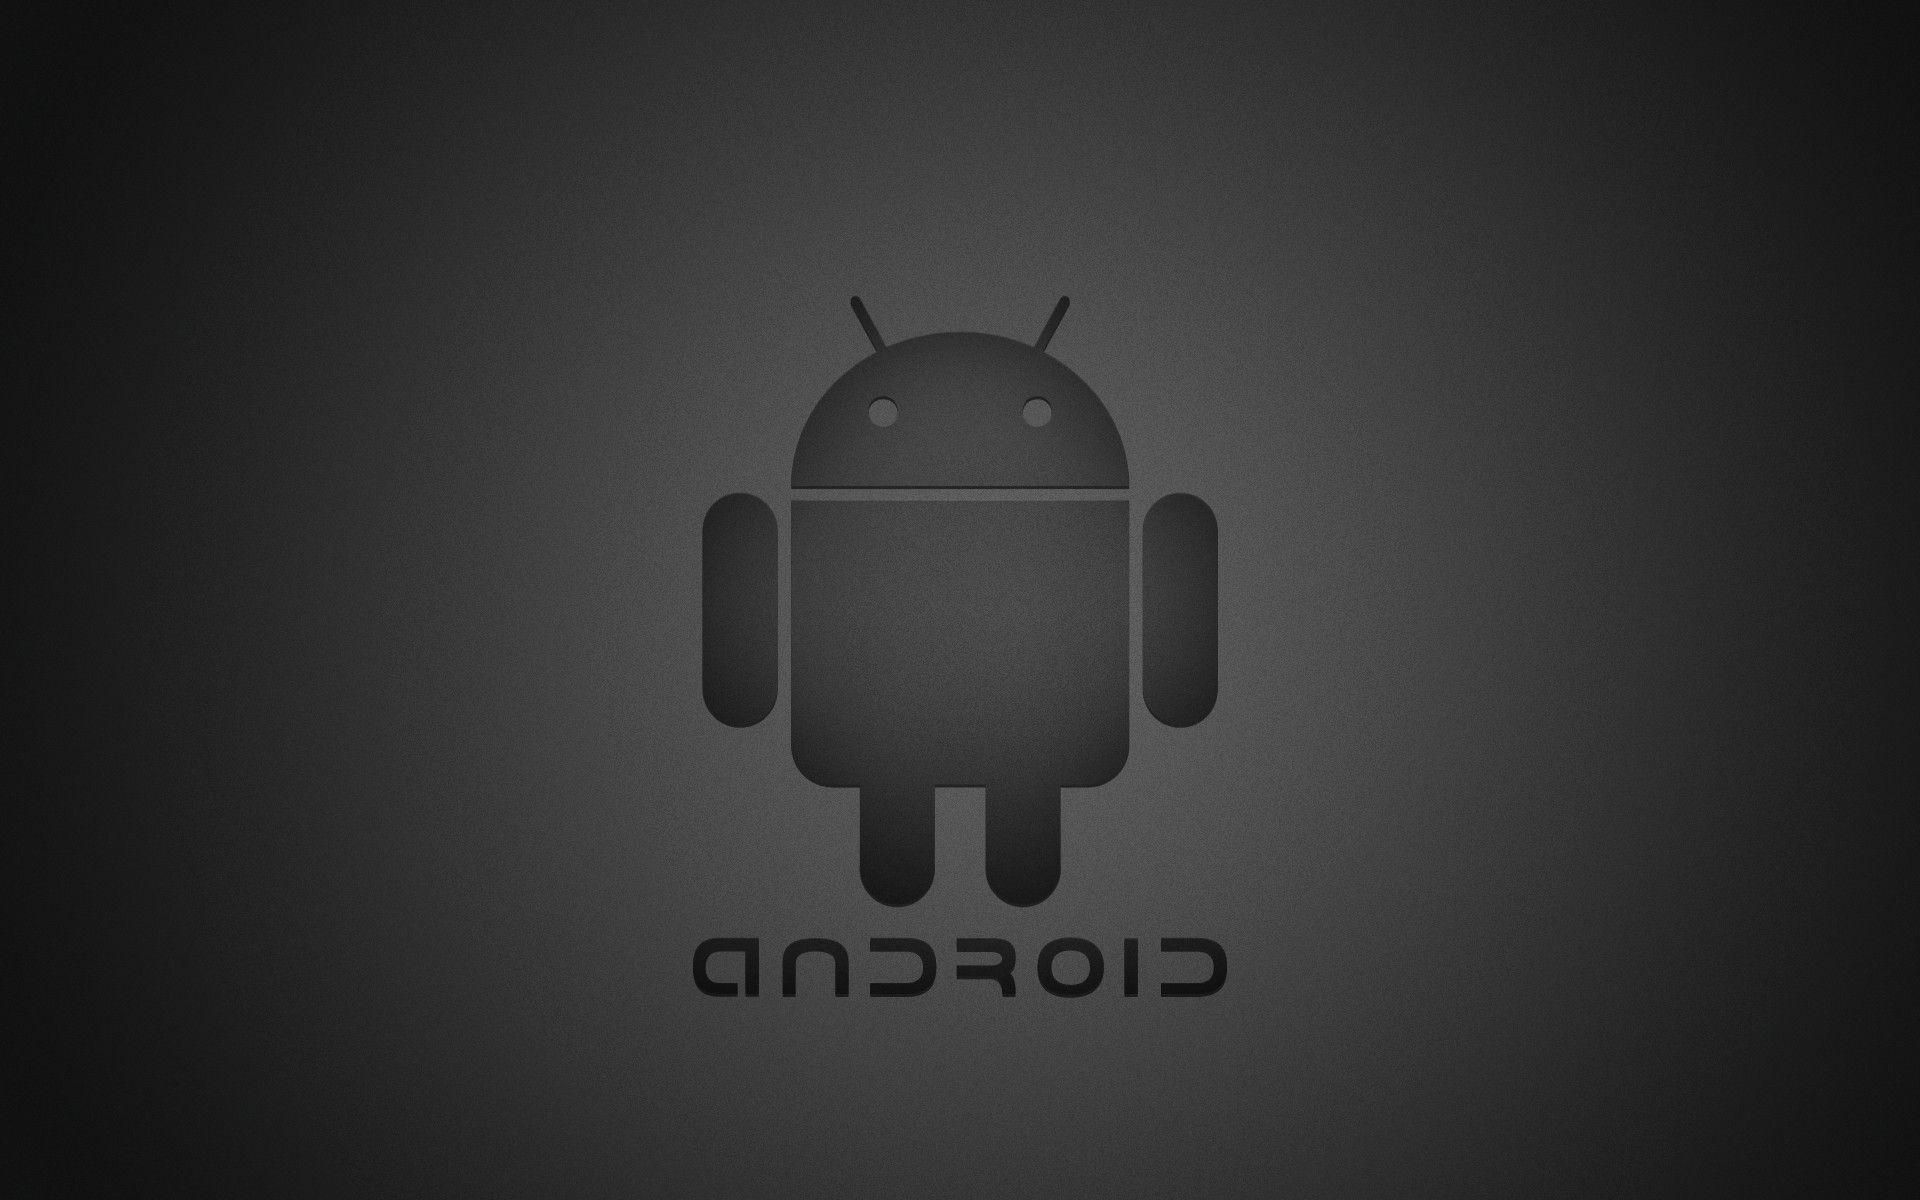 Android Logo Wallpapers Wallpaper Cave Android Wallpapers Kitkat Cave Animeangelofdeathgrim Android Wallpaper Iphone Wallpaper Vintage Dark Wallpaper Android logo wallpapers wallpaper cave